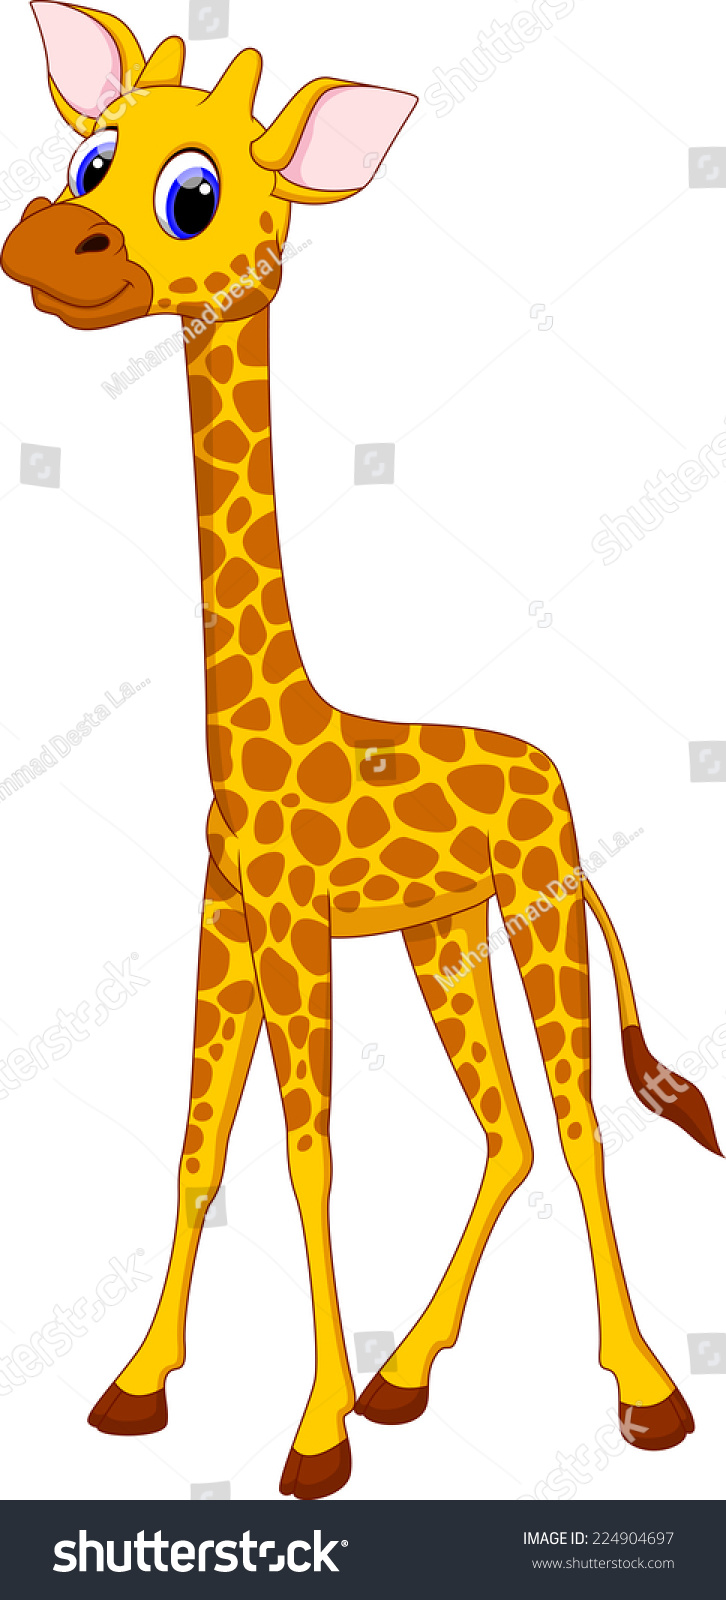 Cute Giraffe Cartoon Stock Vector Illustration 224904697 ...